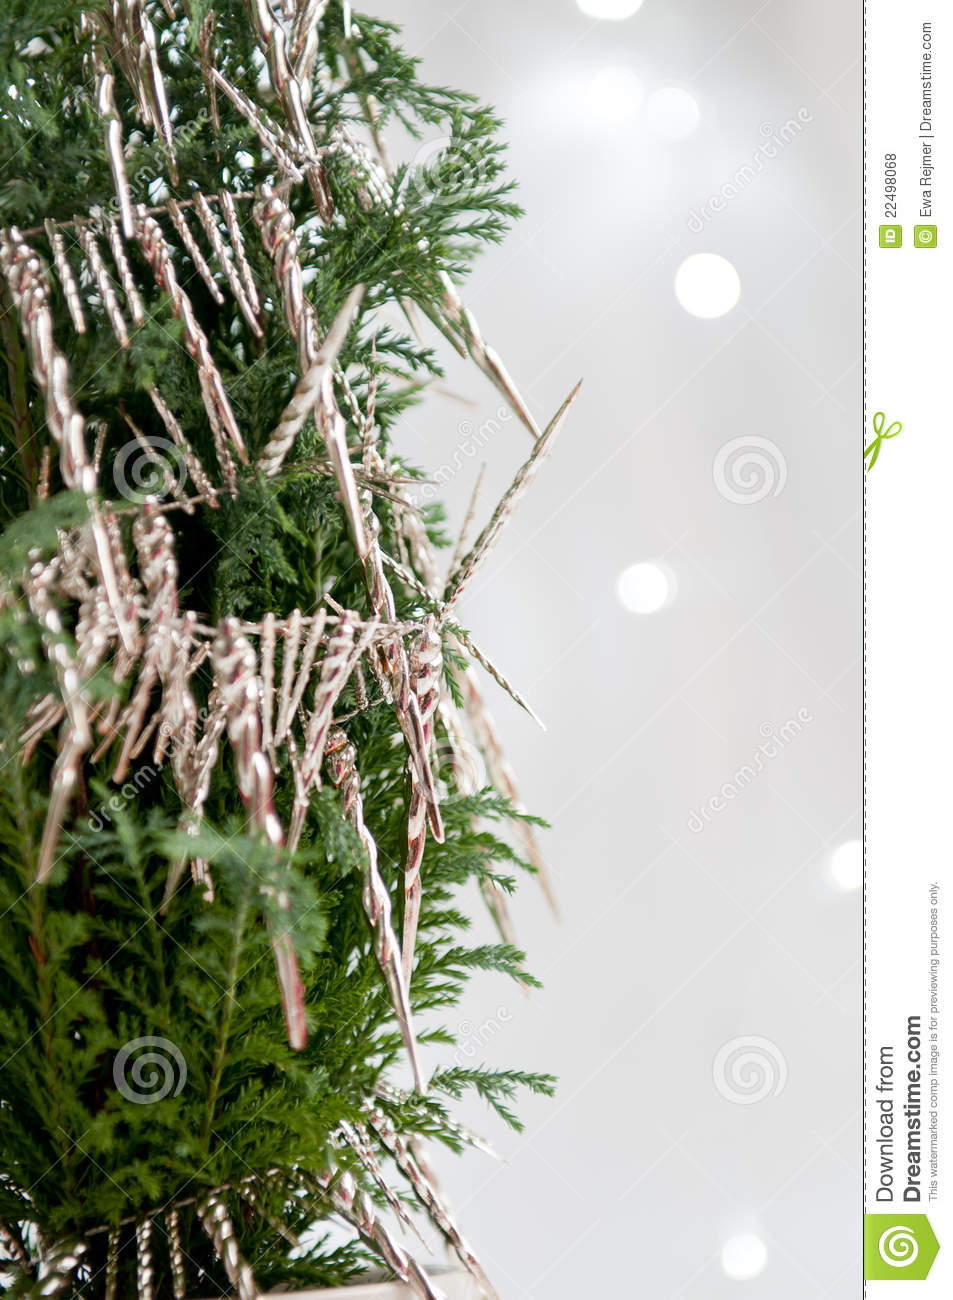 Christmas Tree With Silver Icicles Stock Photo - Image of icicle ...